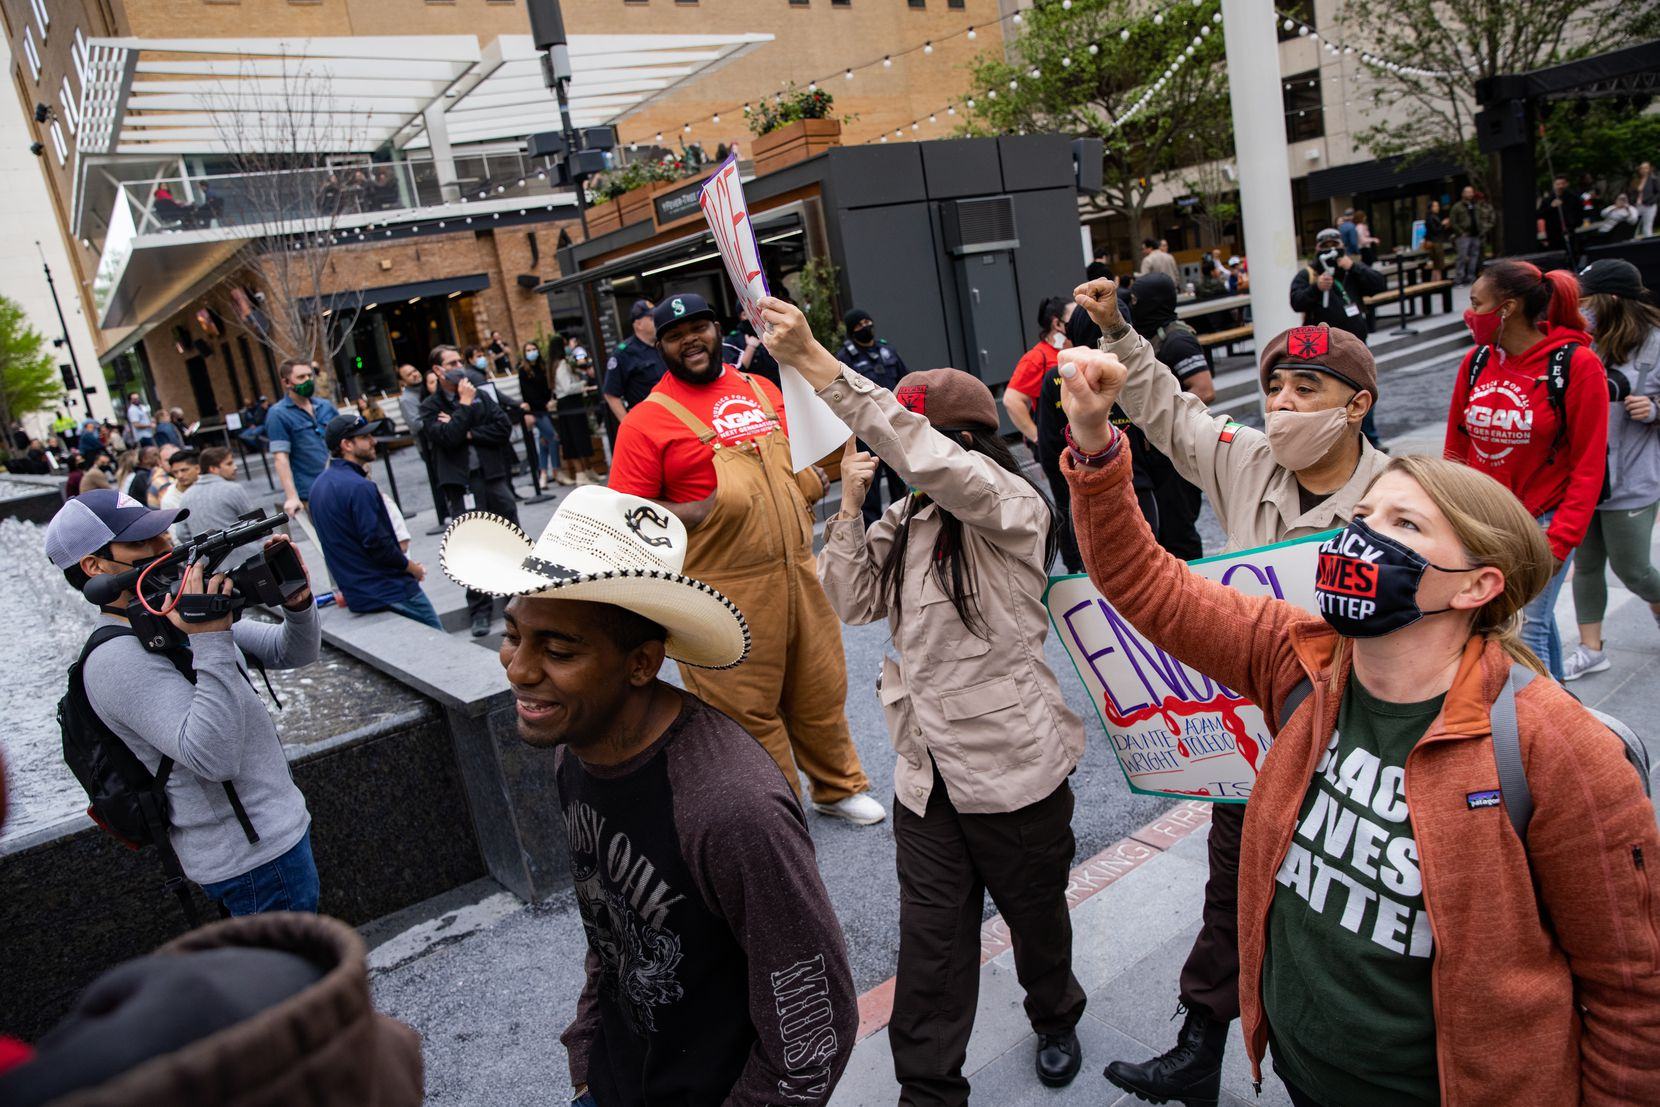 On April 17, 2021, members of the Next Generation Action Network led a protest through the AT&T Discovery District seeking justice for Adam Toledo, Daunte Wright and Marvin Scott III.